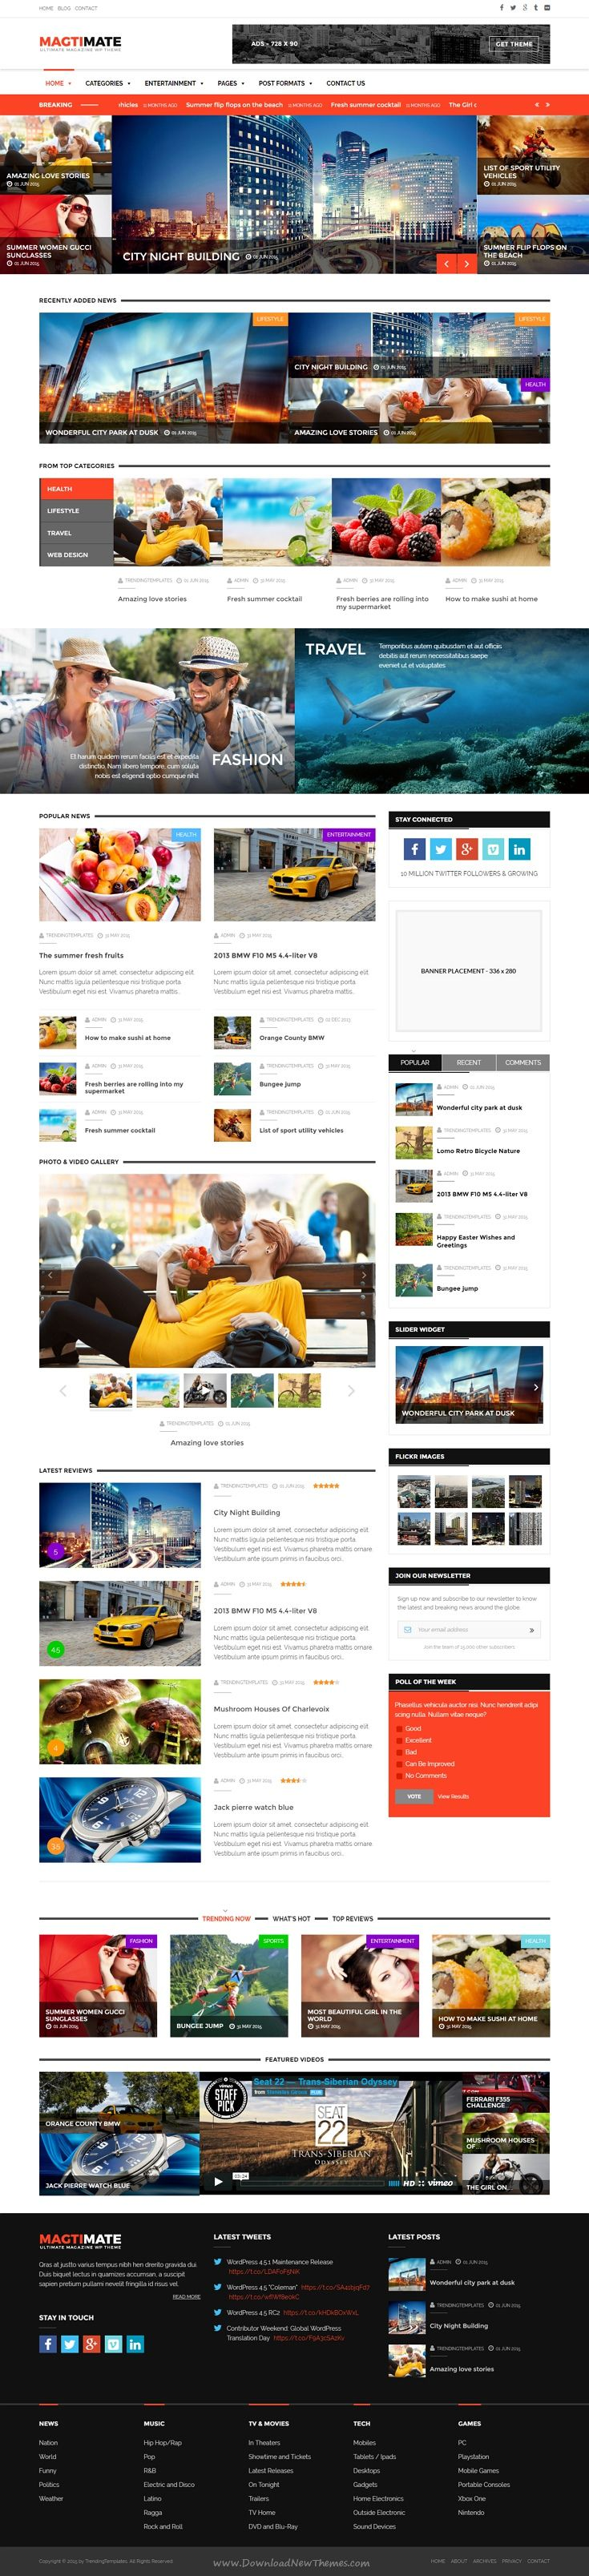 85 best Web Design images on Pinterest | Page layout, Graphics and ...